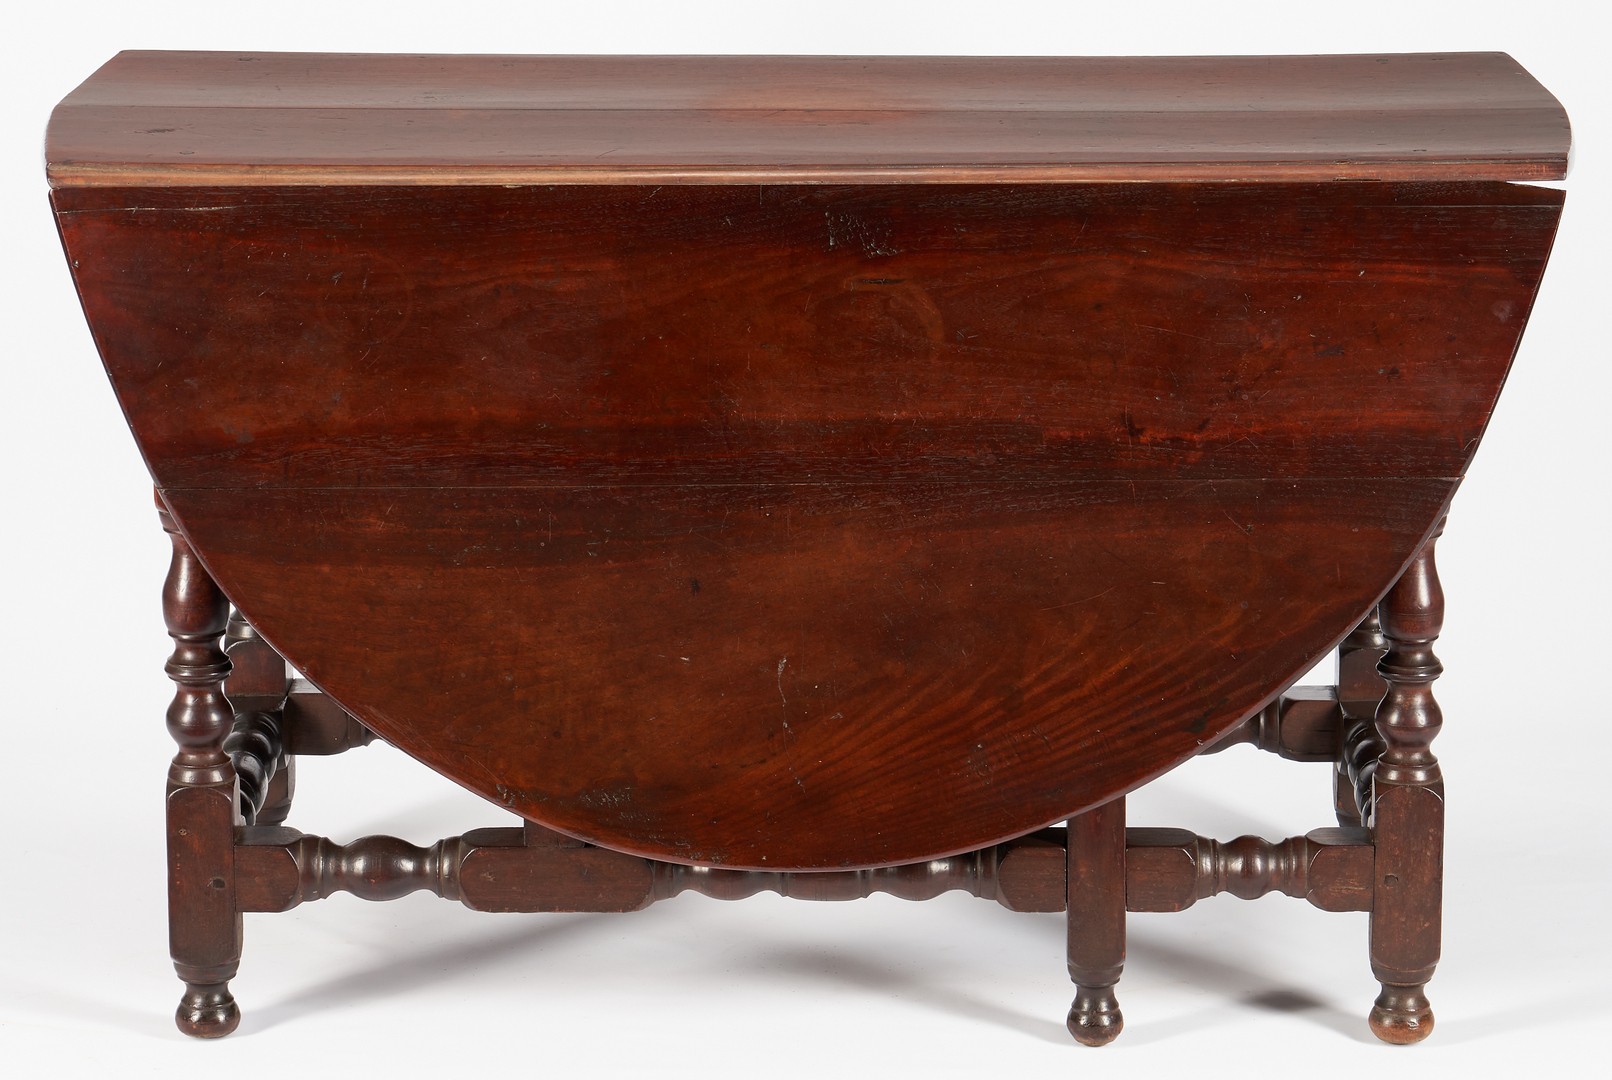 Lot 227: William and Mary Pennsylvania Two-Drawer Gateleg Table